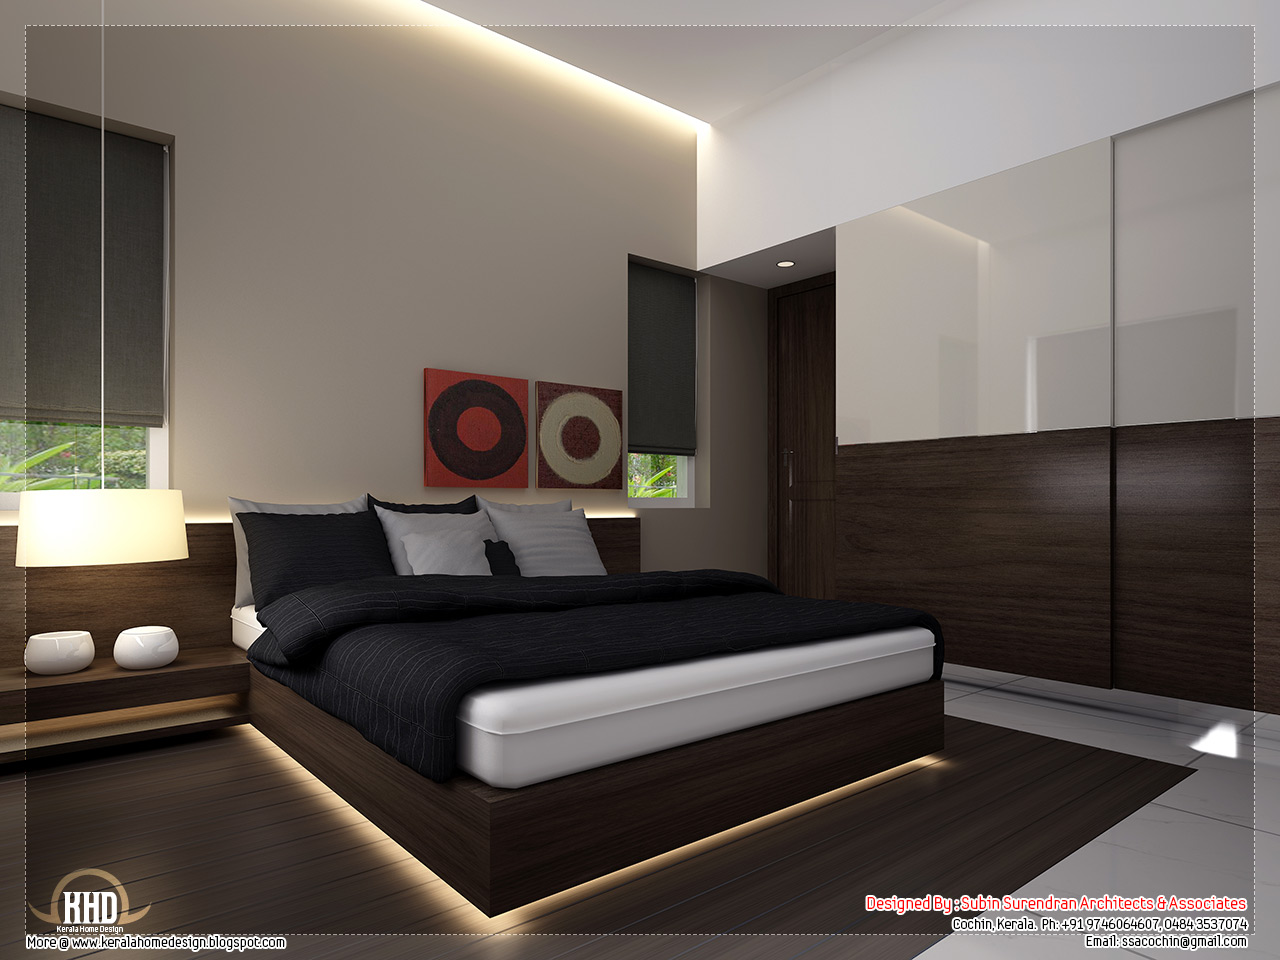 Beautiful home interior designs kerala home design and for Interior design ideas for small homes in kerala